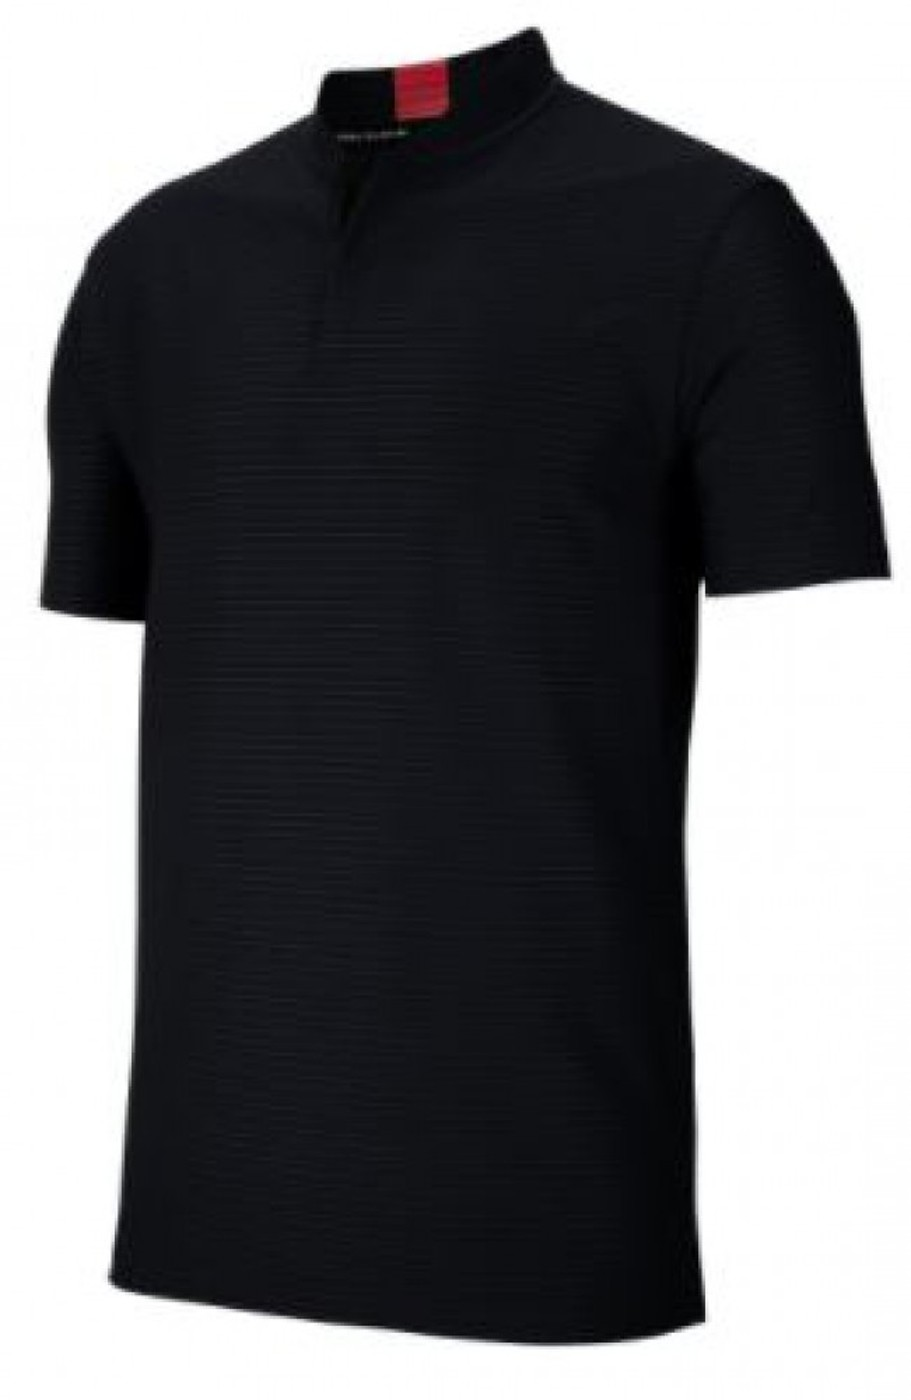 Nike Dri-FIT Tiger Woods Men s